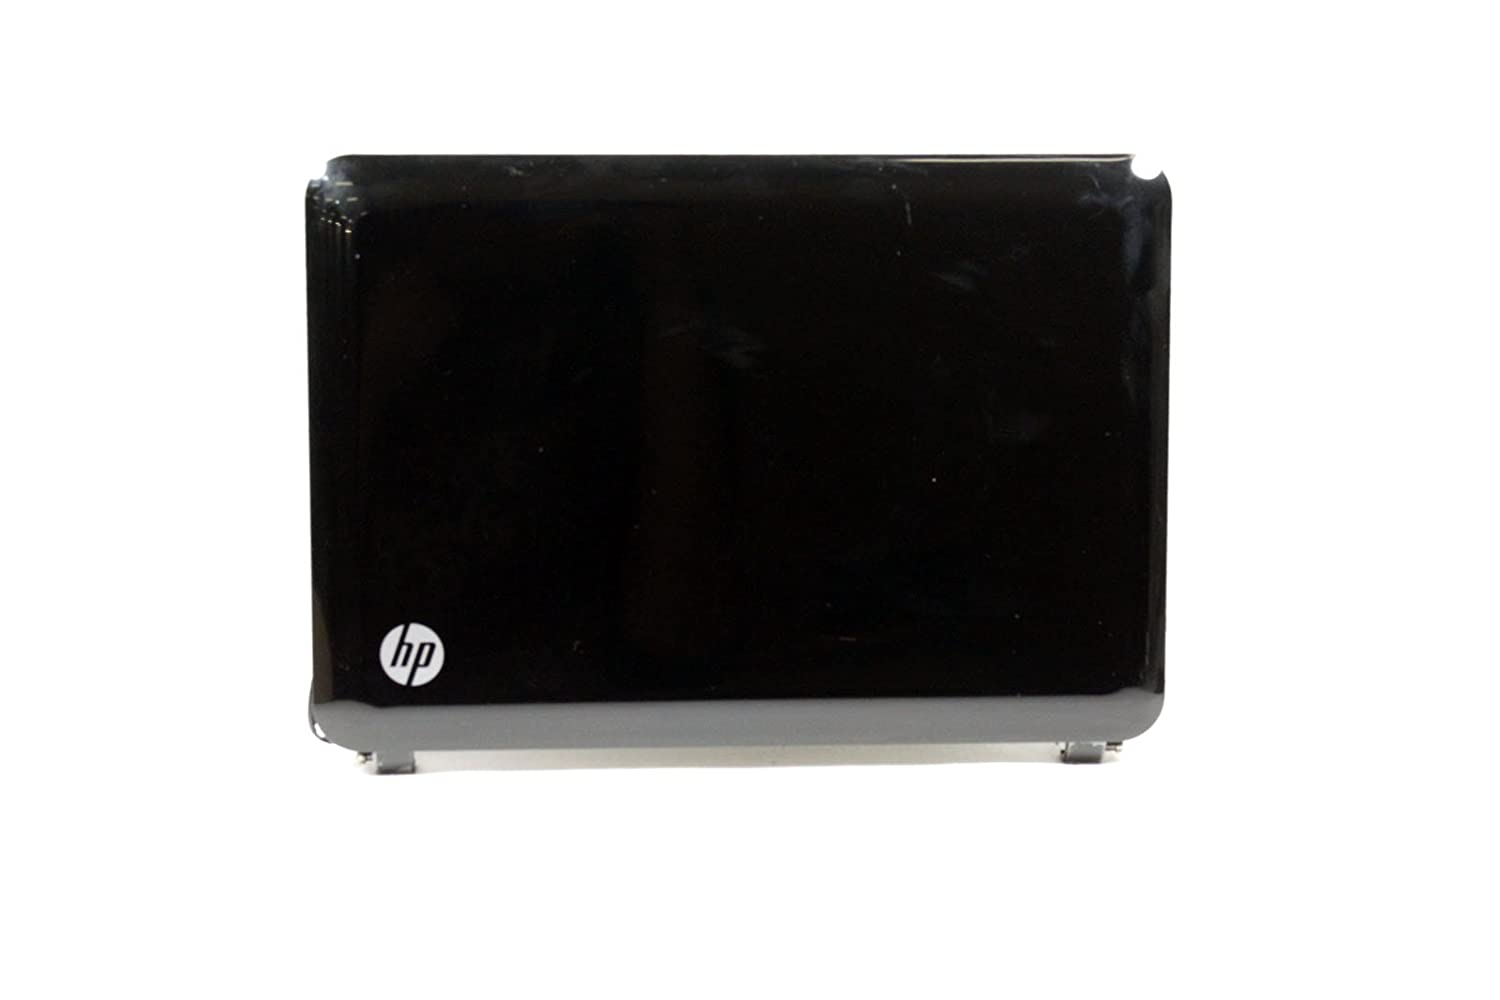 HP Mini 110-3099nr Notebook Webcam Windows 8 Driver Download